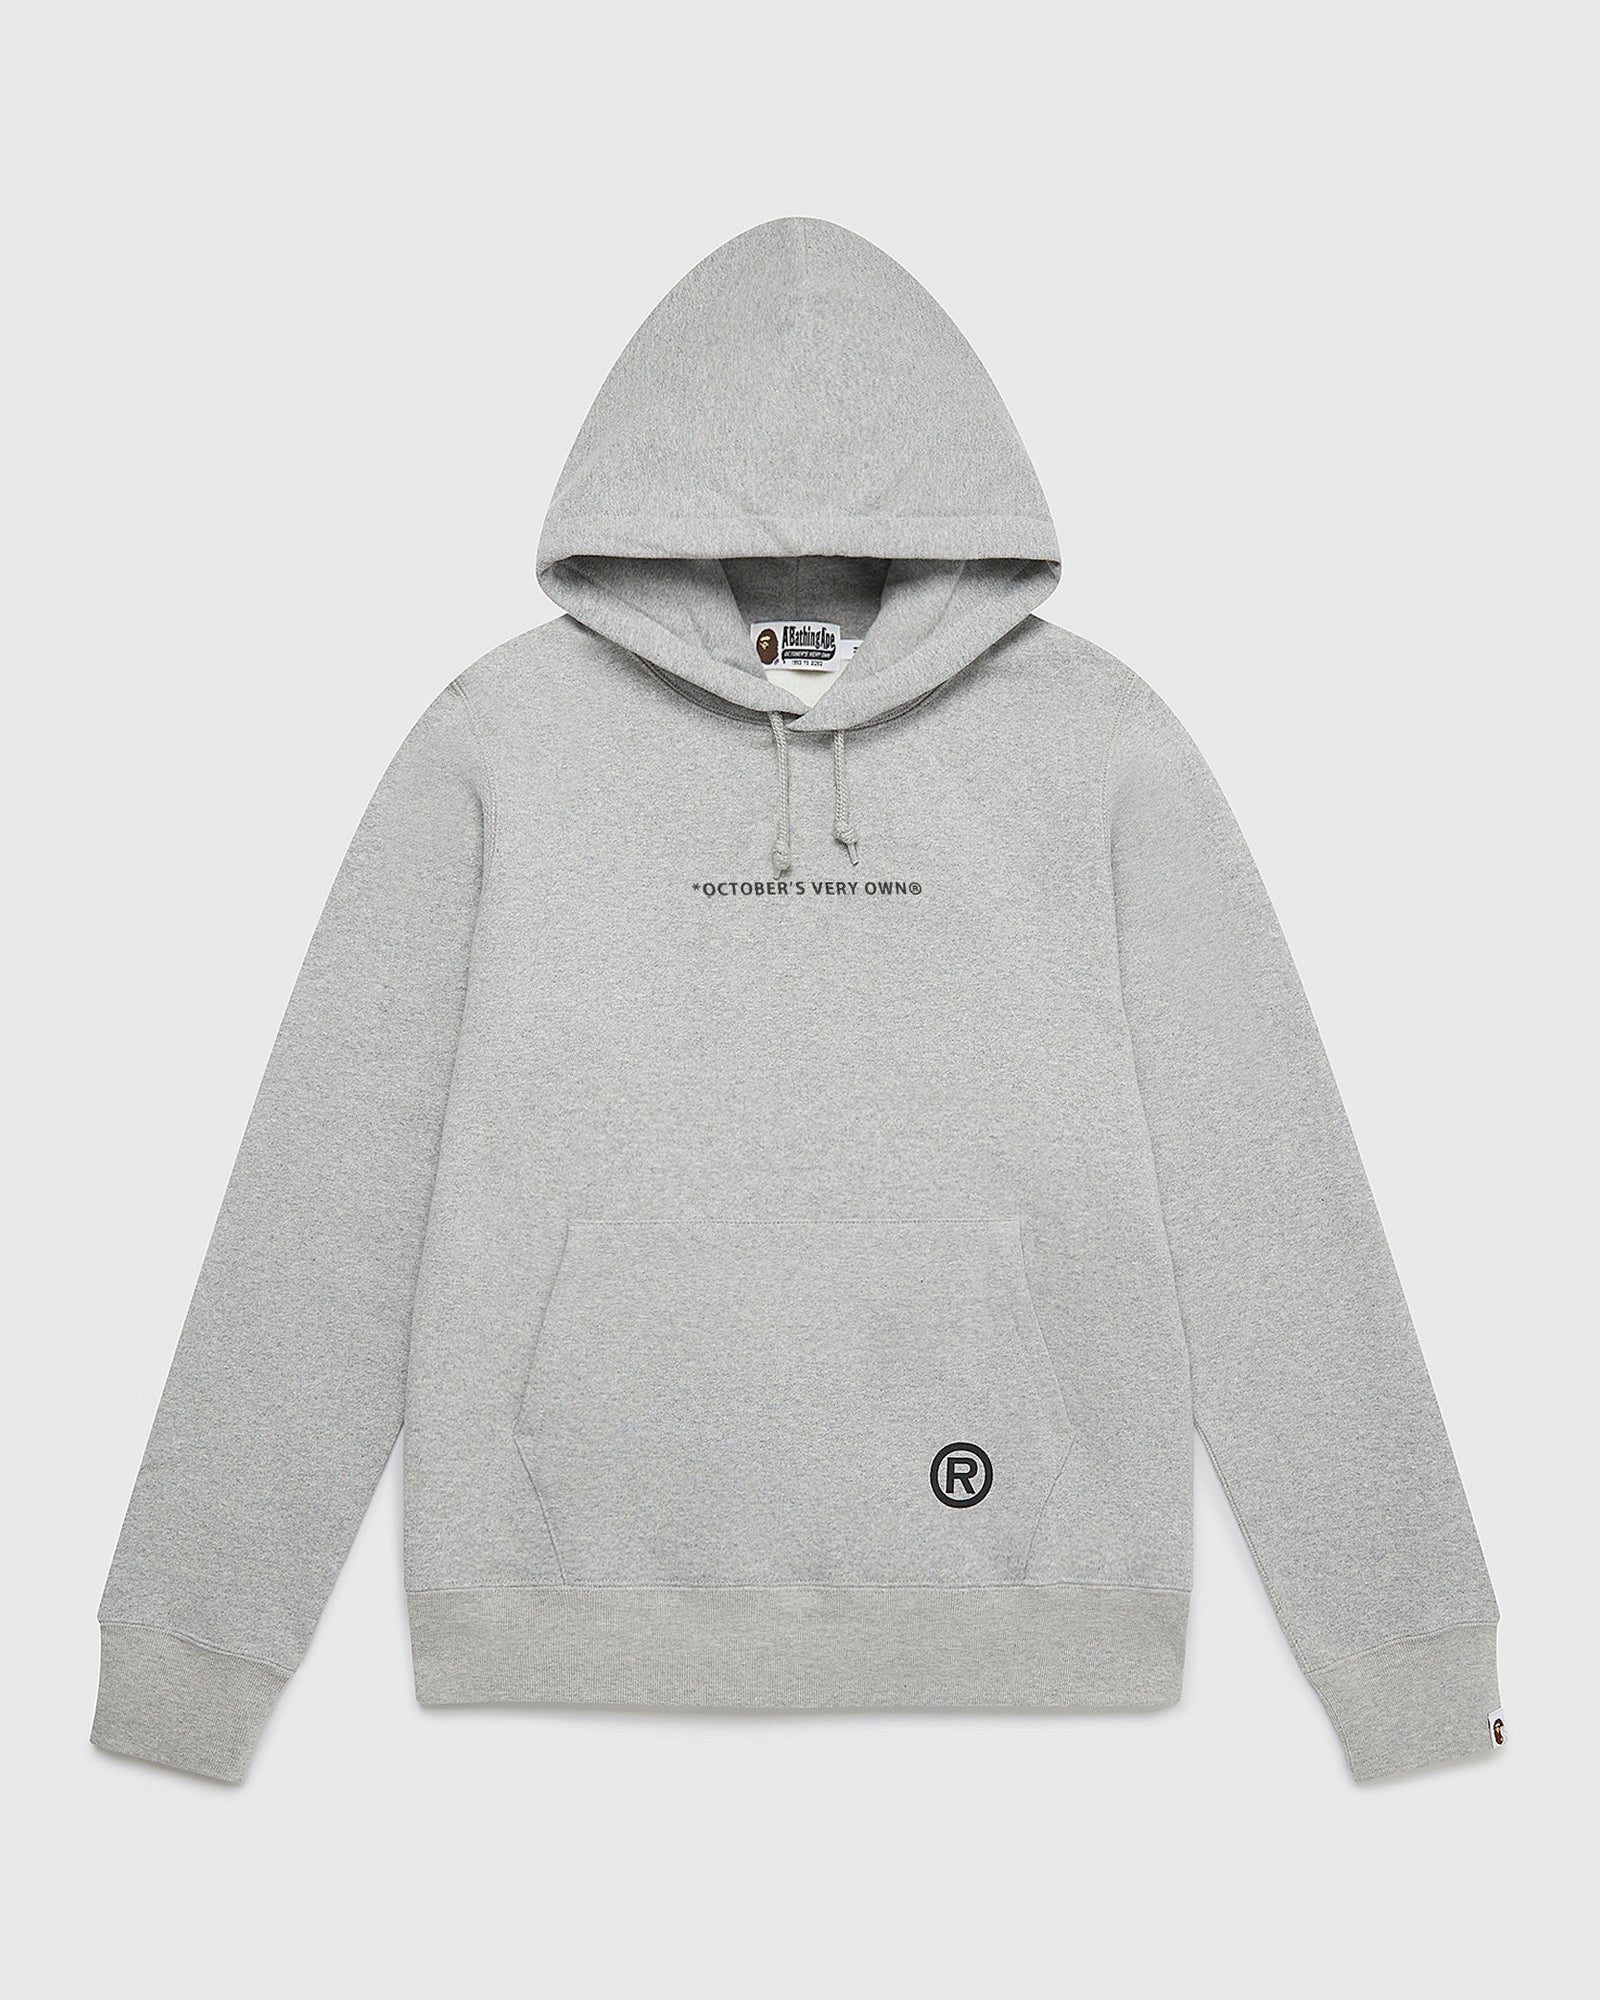 OVO X BAPE PULLOVER HOODIE - HEATHER GREY IMAGE #1